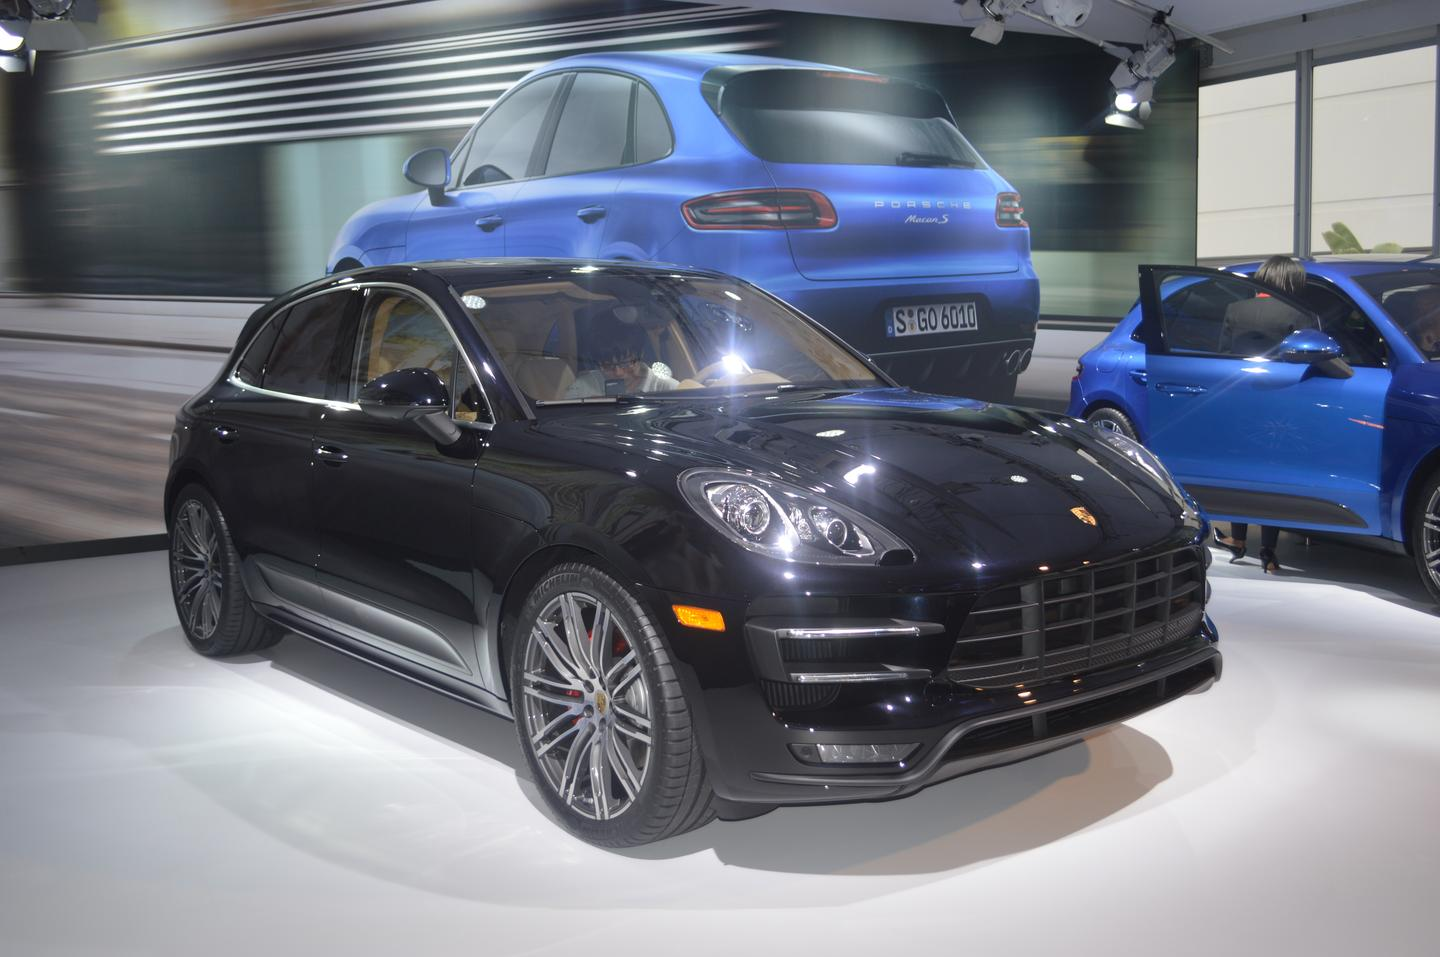 The Porsche Macan Turbo at the Los Angeles Auto Show